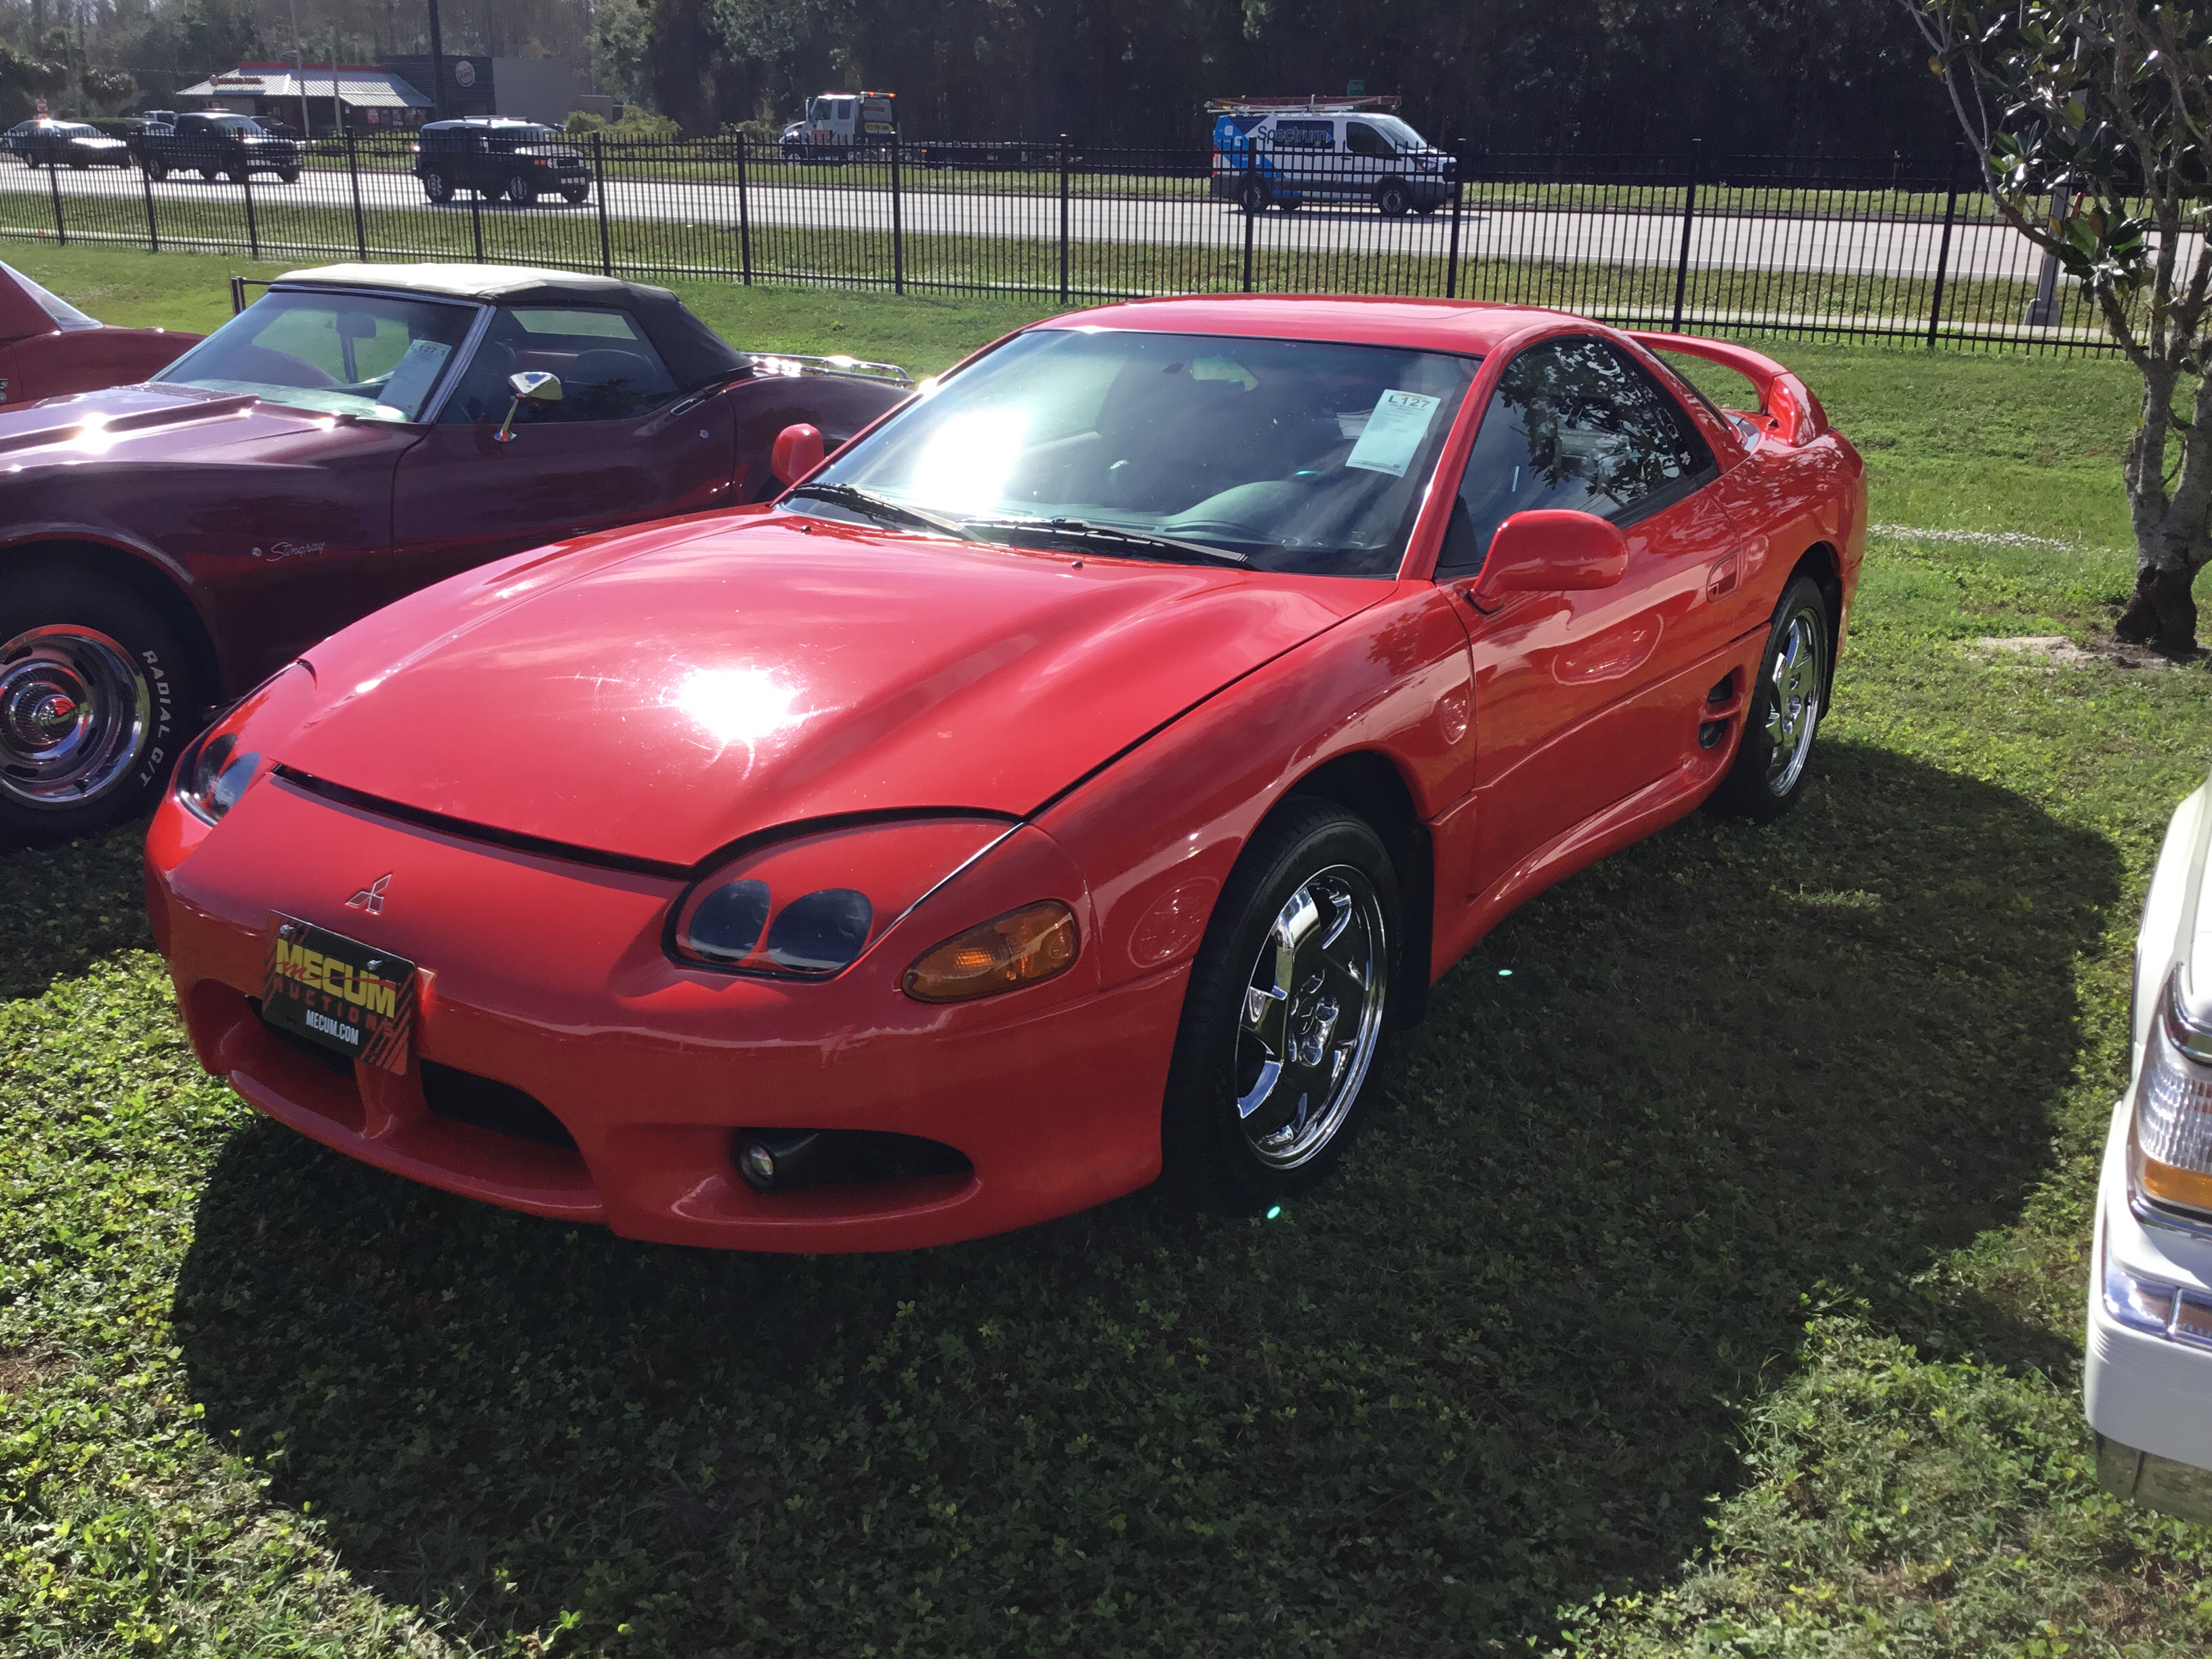 1991 Mitsubishi 3000 Gt Values Hagerty Valuation Tool